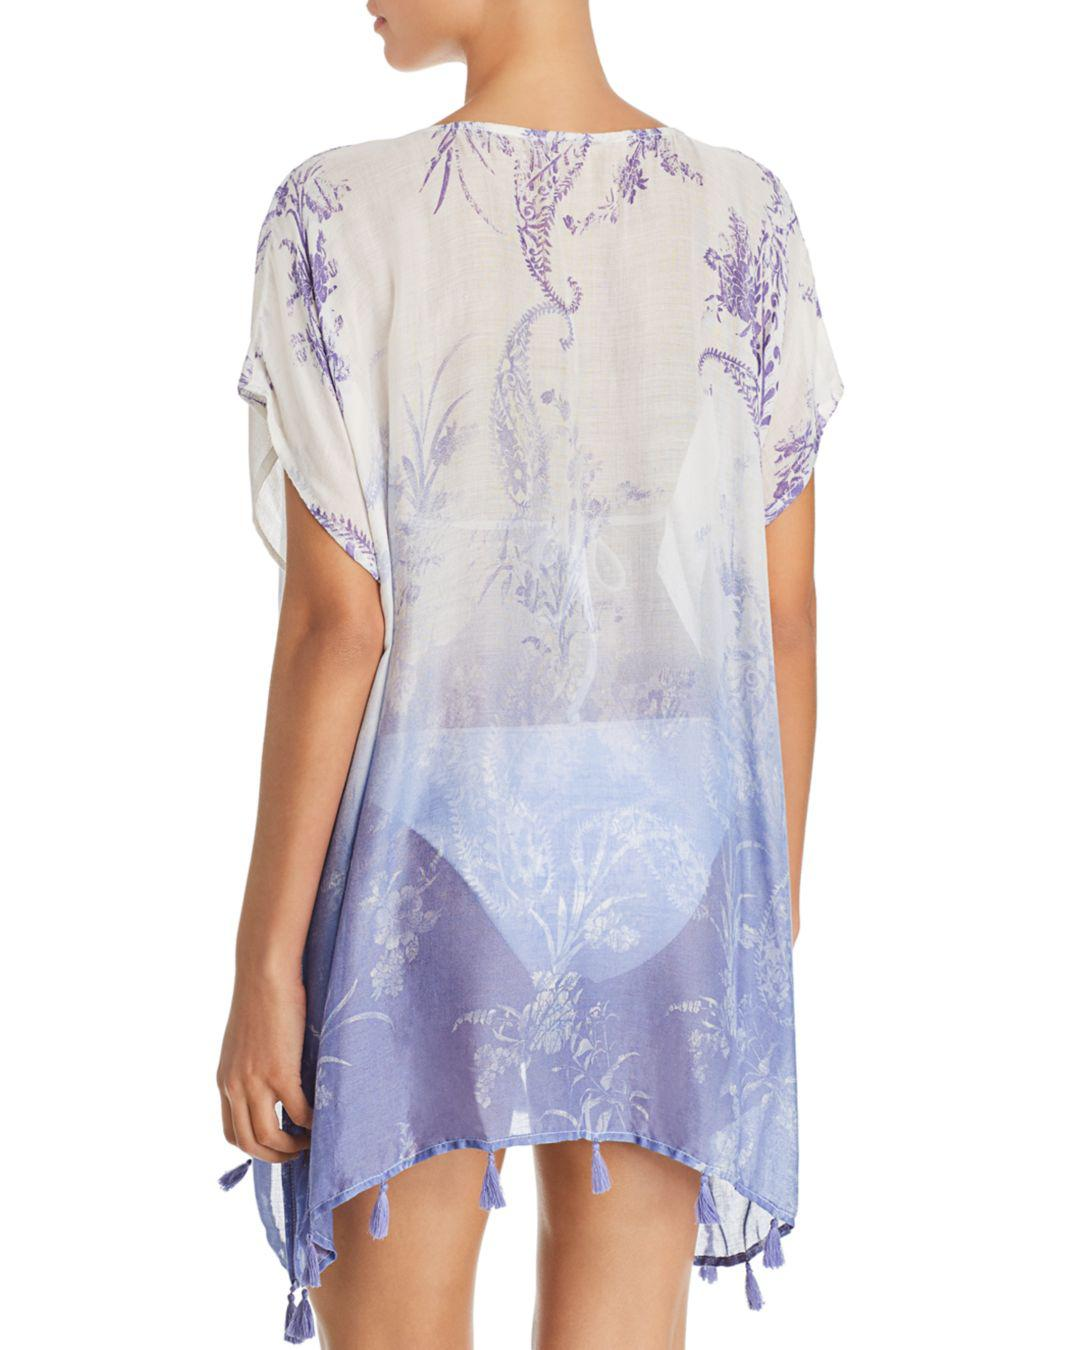 2f5d6899b79f1 Lyst - Surf Gypsy Ombré Paisley Print Tunic Swim Cover-up in Purple